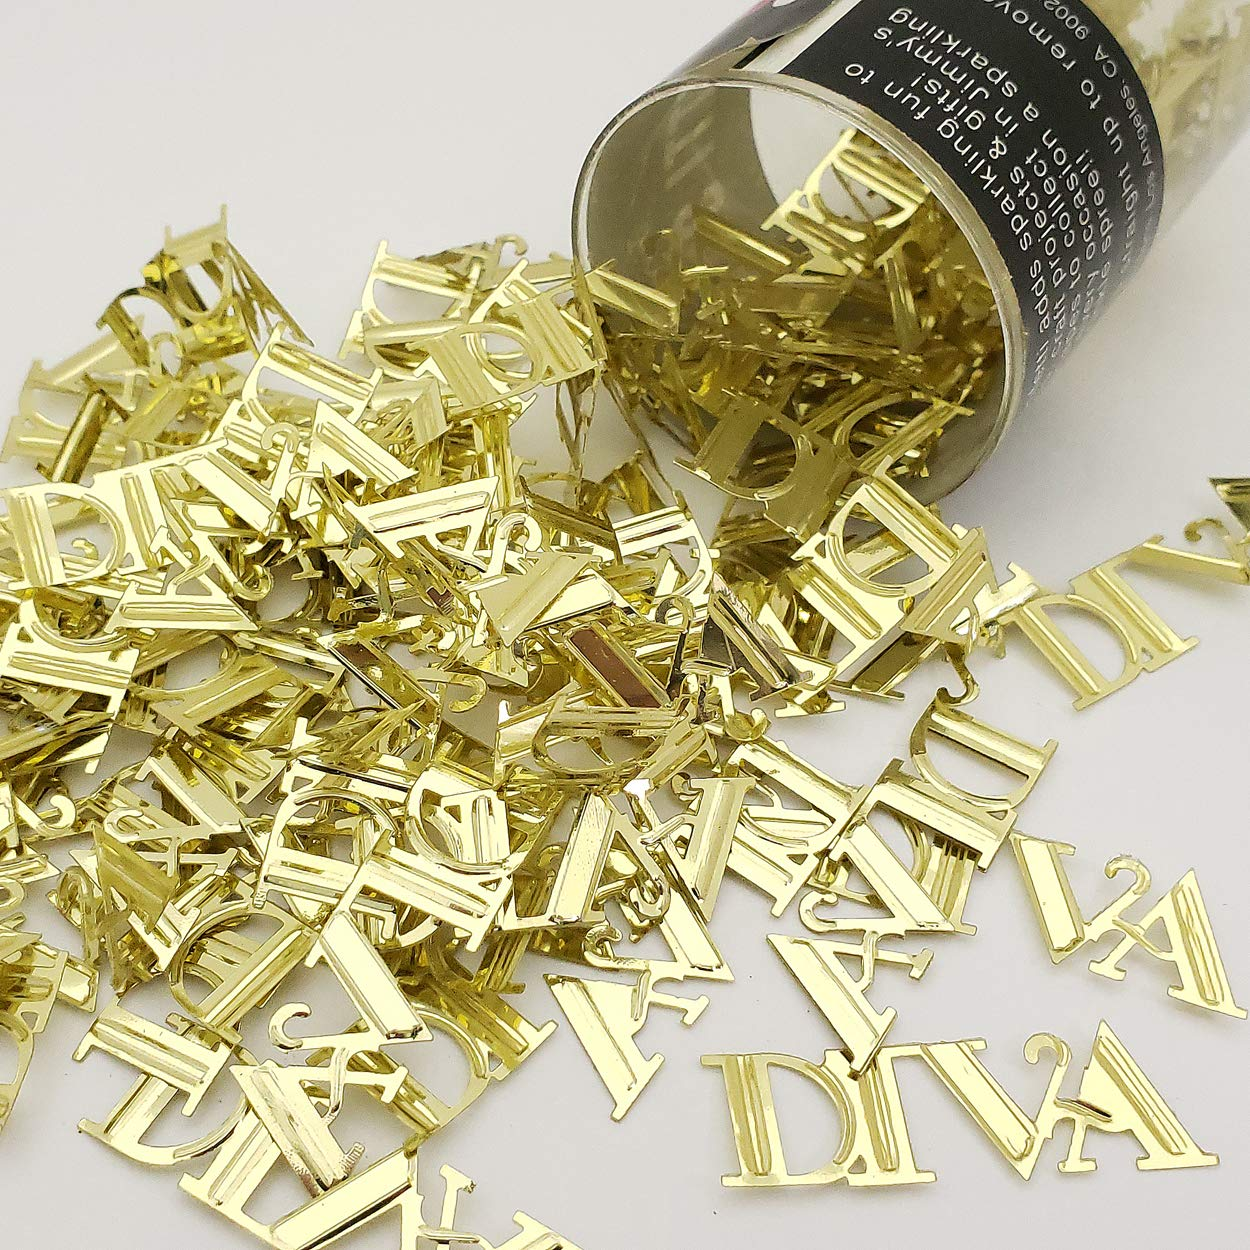 Confetti Word Diva Gold - One Pound (16 oz) Free Priority Mail (7715)